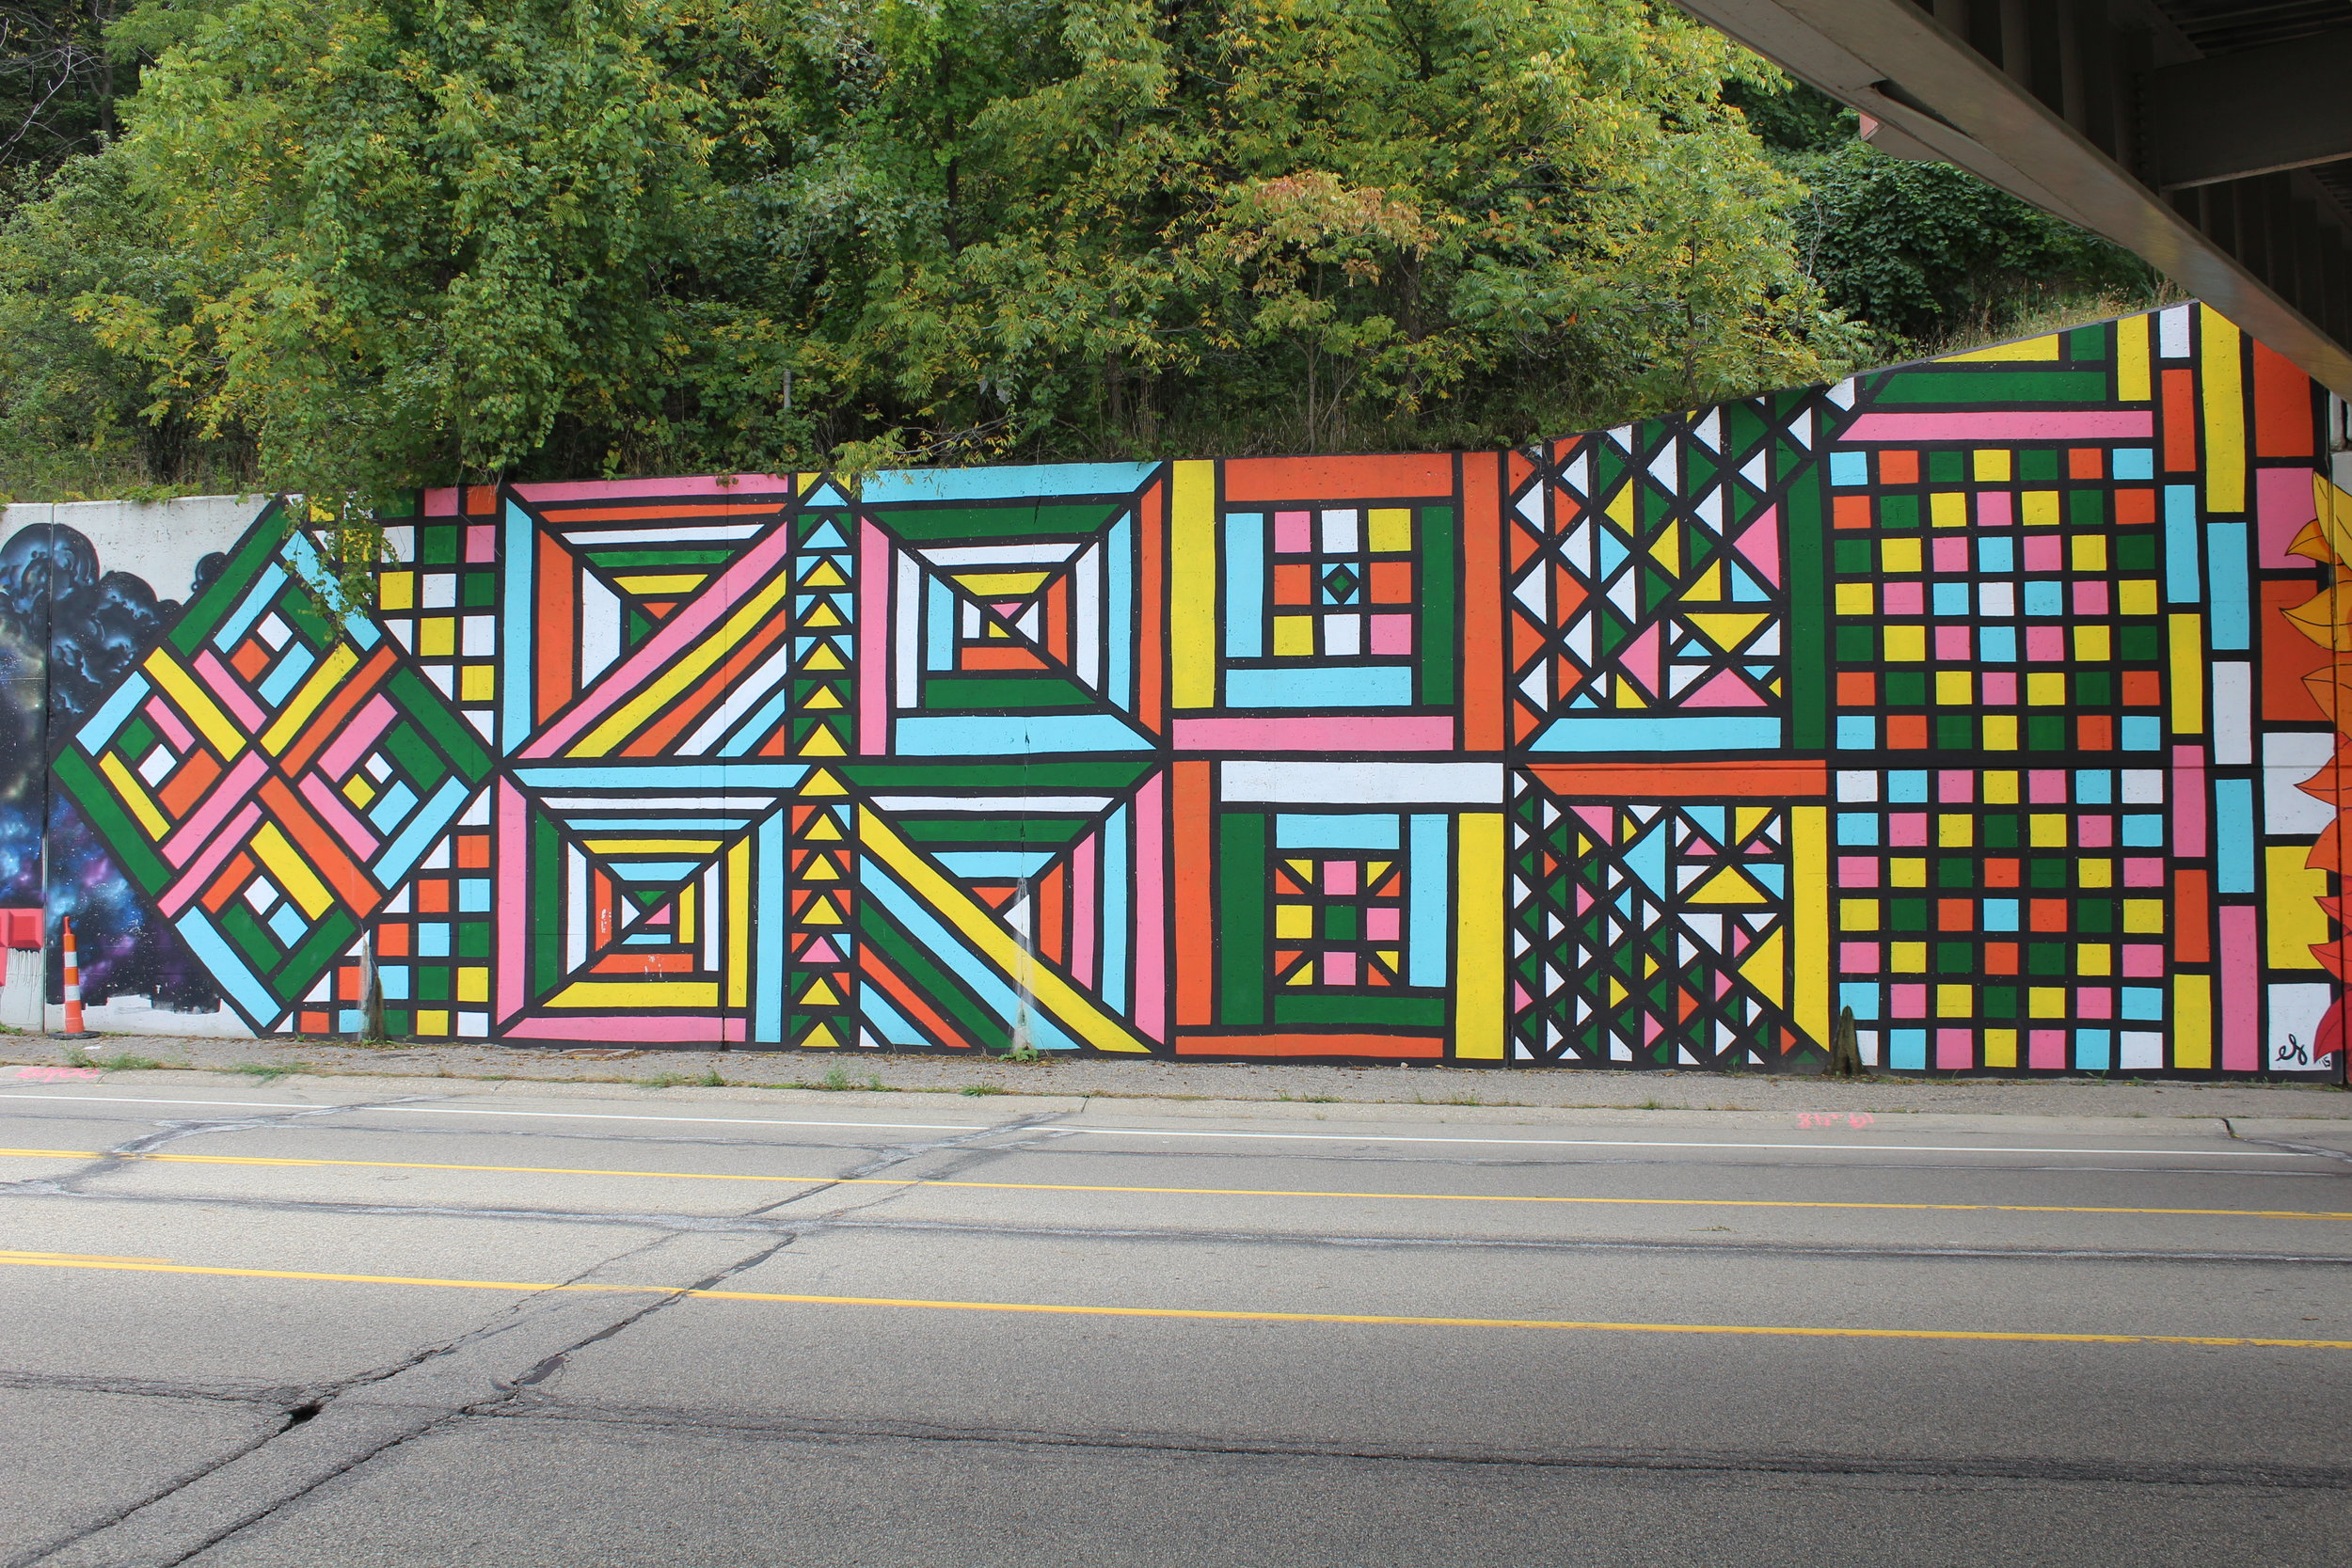 Geometric quilt mural on retaining wall of I-196